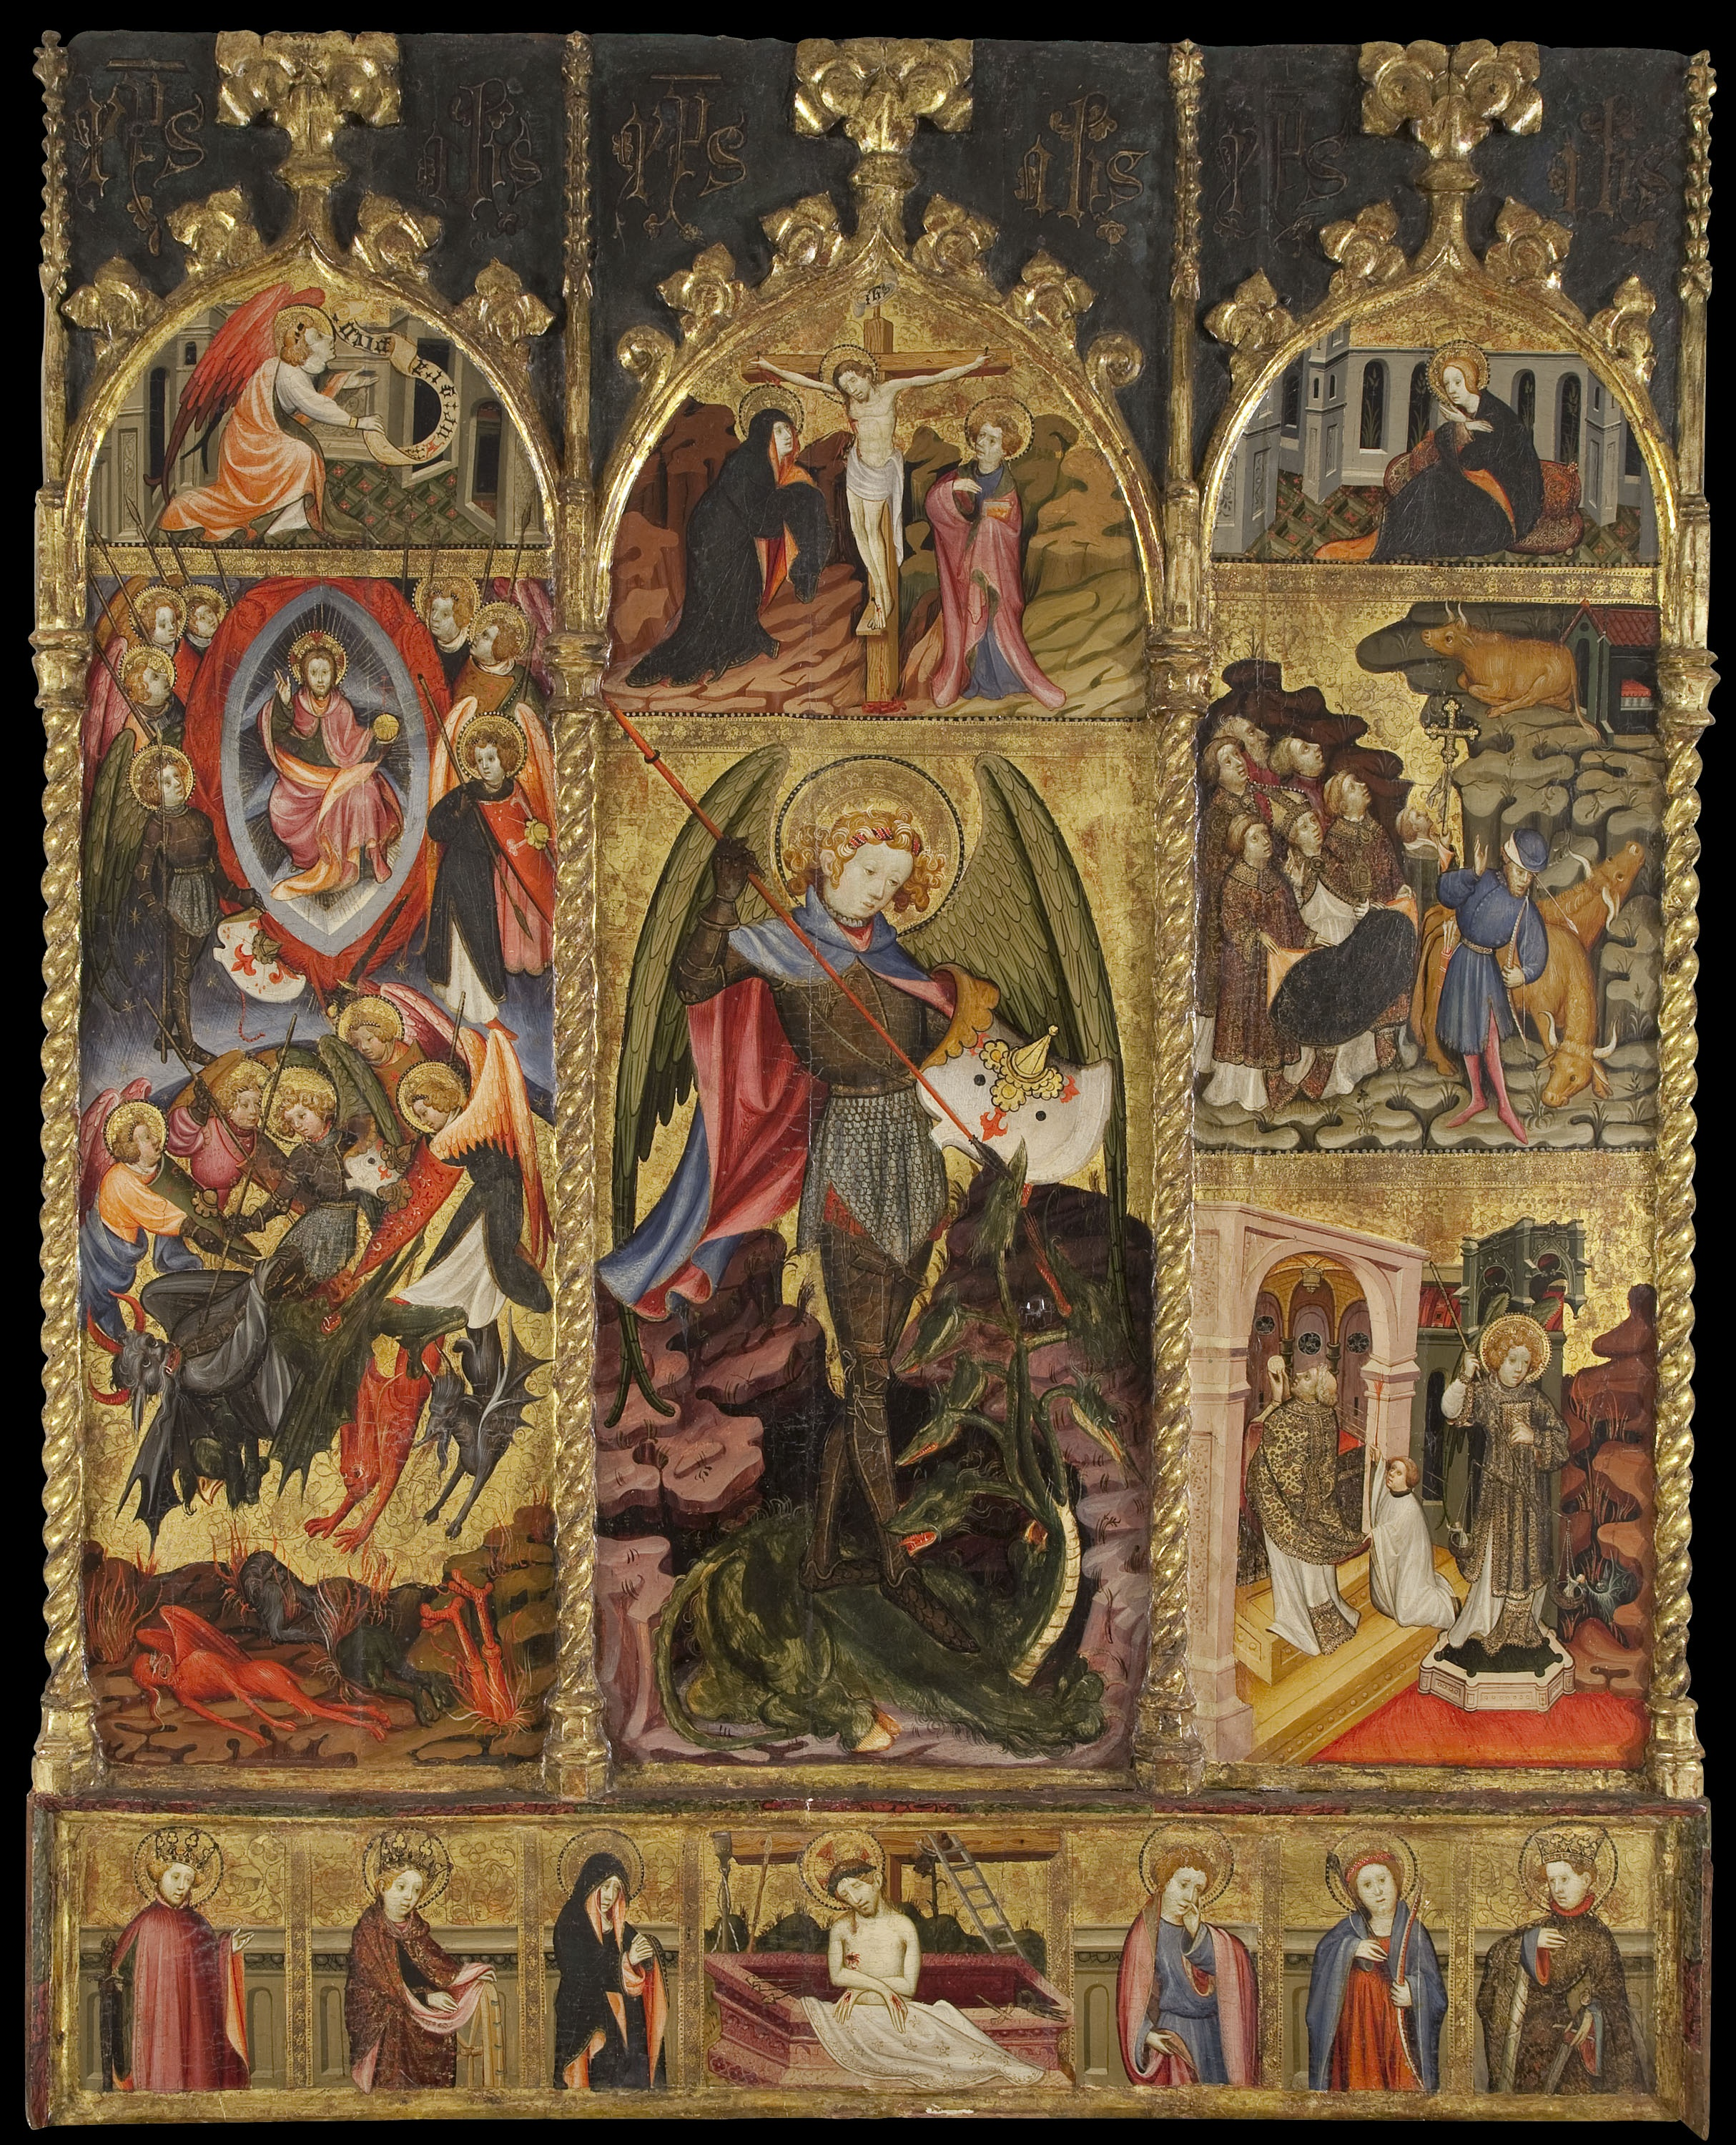 Joan Mates - Altarpiece of Saint Michael the Archangel - First quarter of 15th century